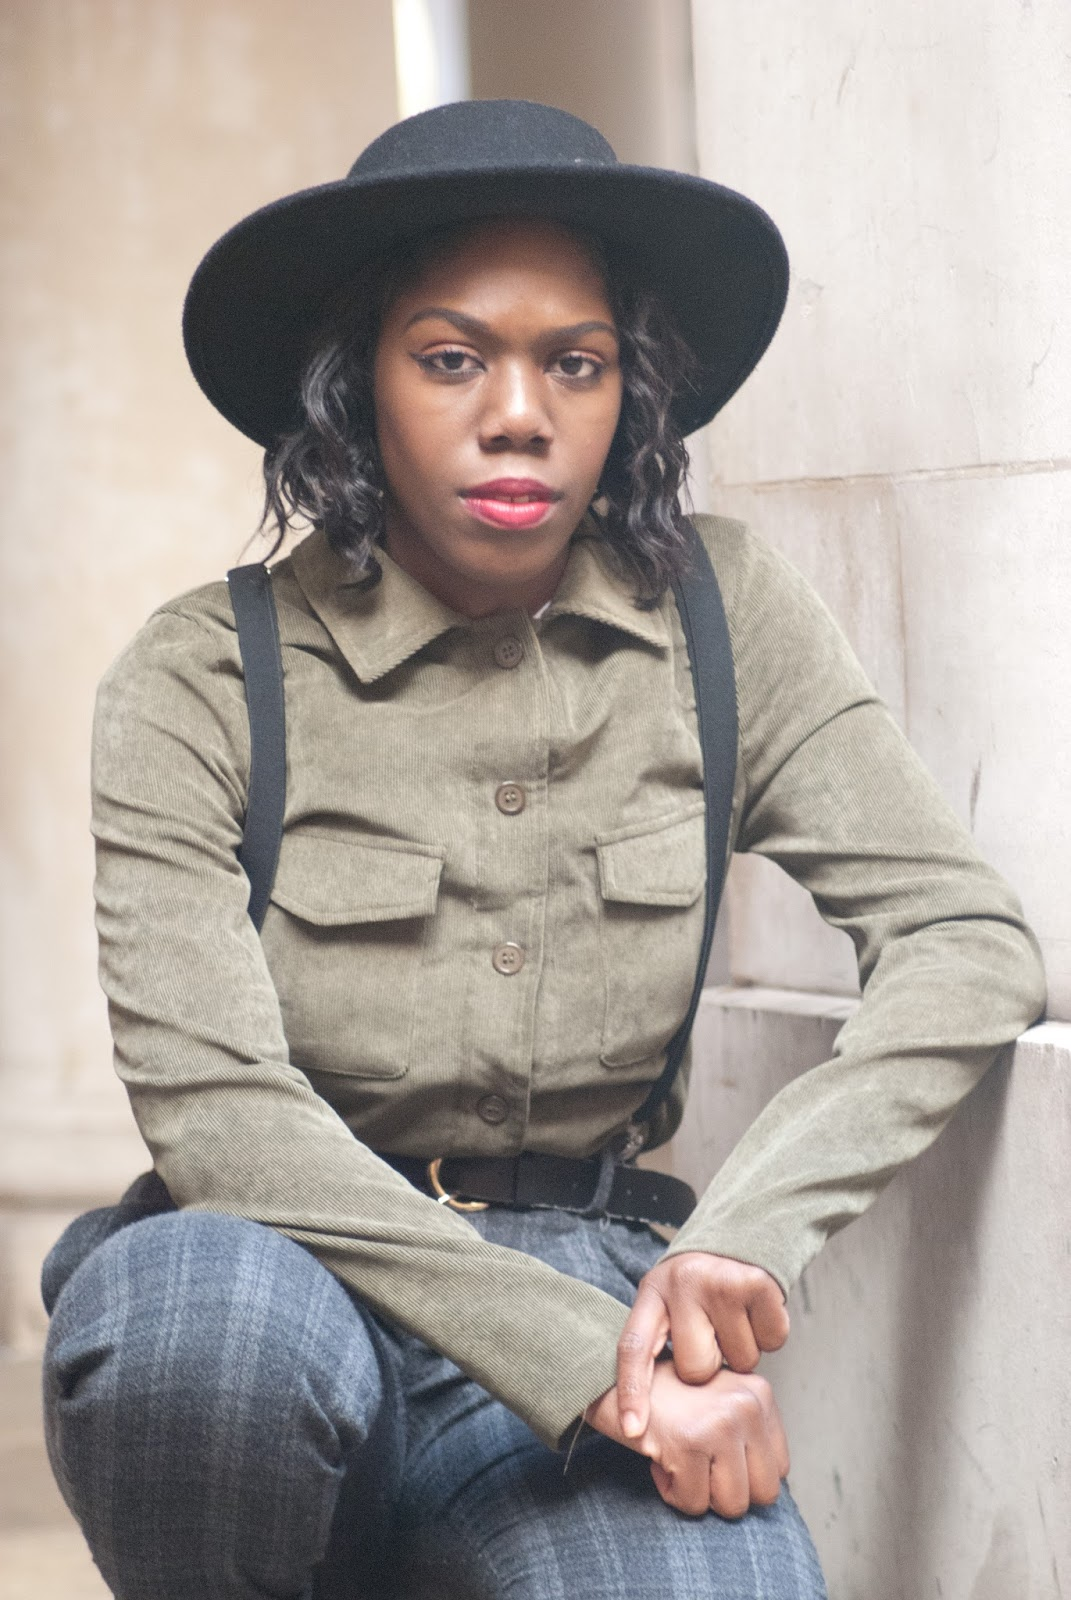 Zara Checked Cropped Trousers, New Look Black Suede Ankle Boots, Boohoo Cord Oversized Shirt, Black Felt Hat H&M, fashion blogger, temple church area, temple, street style, androgynous style, 100 Ways to 30, UK Style Blog